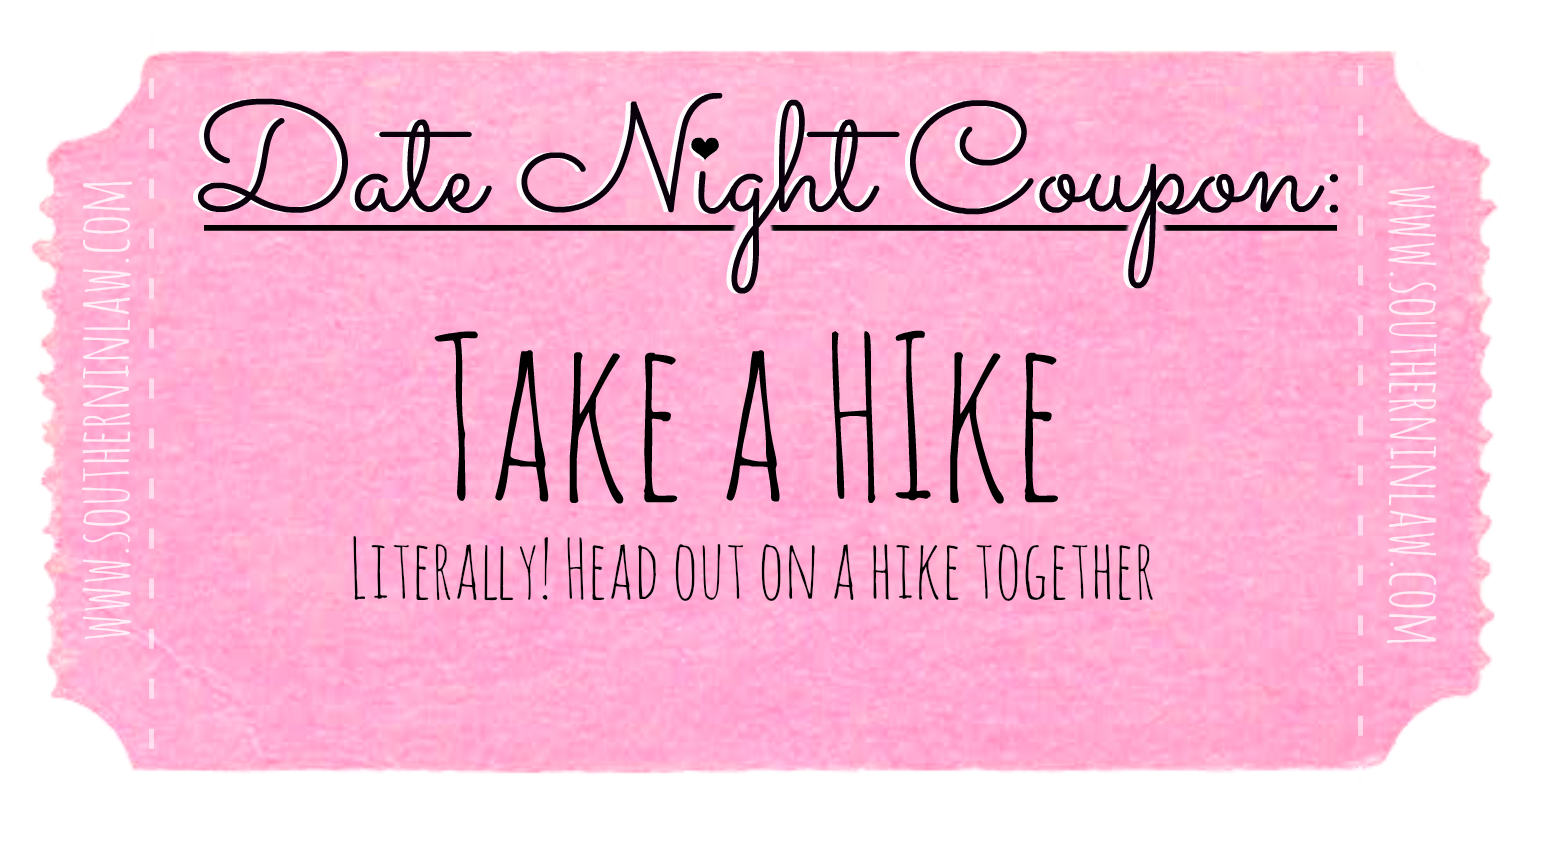 Affordable Date Ideas - Cheap Date Ideas Coupons - Go on a Hike